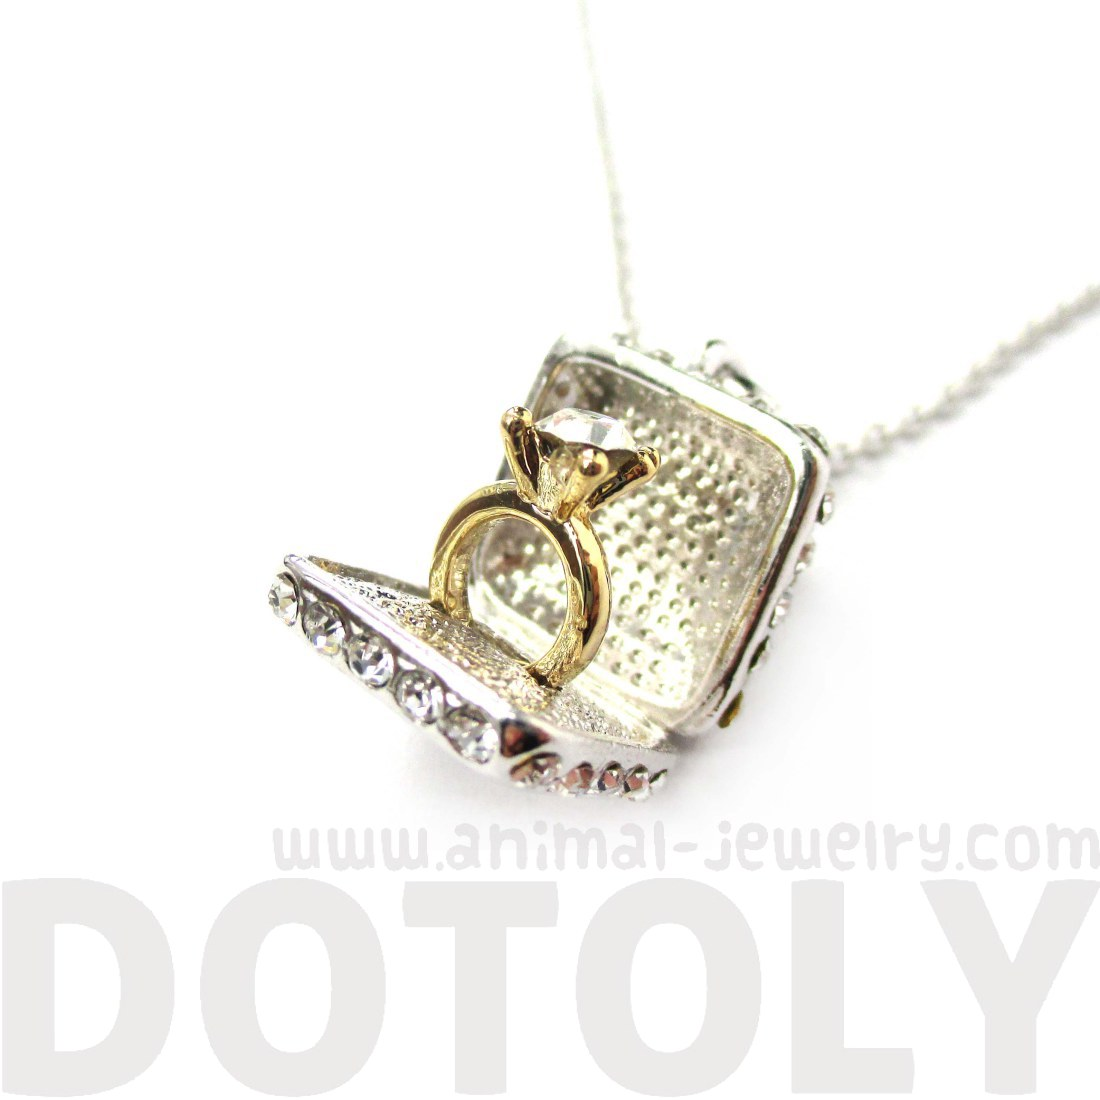 cilory diamond and american series pendant maira pendants jewellery necklaces neckwear buy